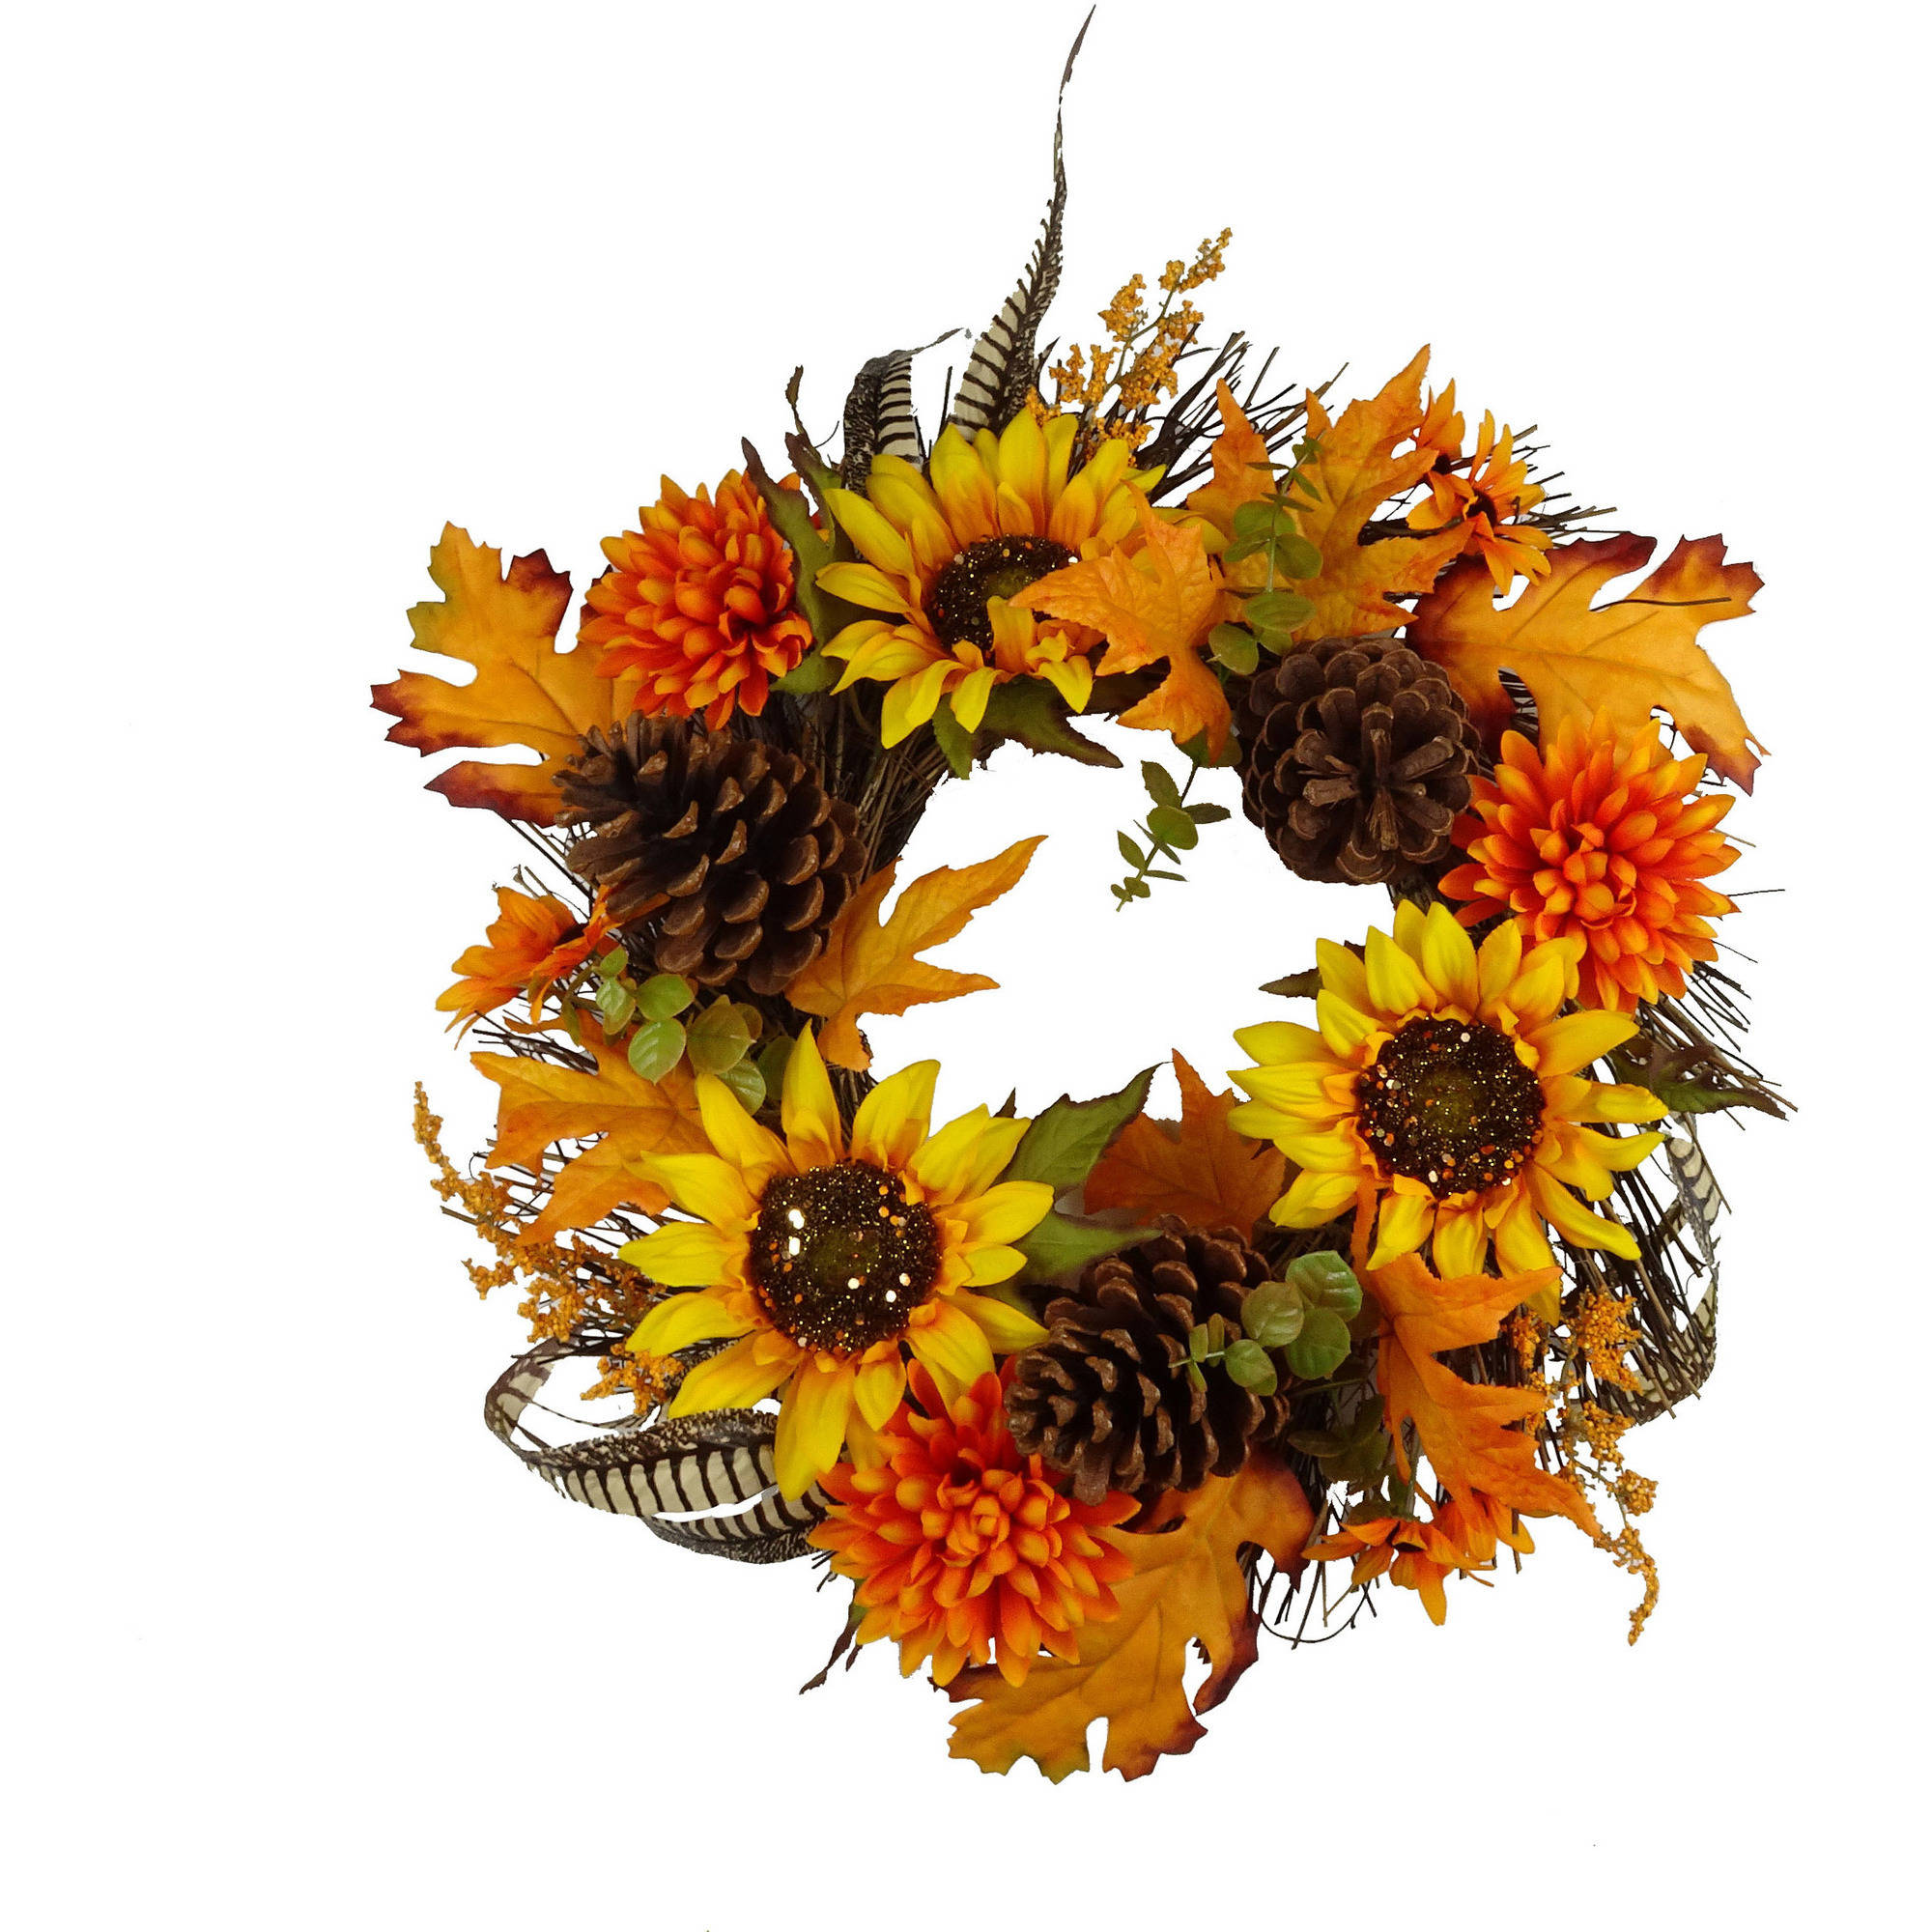 Yellow Sunflower Mixed Wreath Harvest Fall Decor Fall Harvest Halloween Decoration